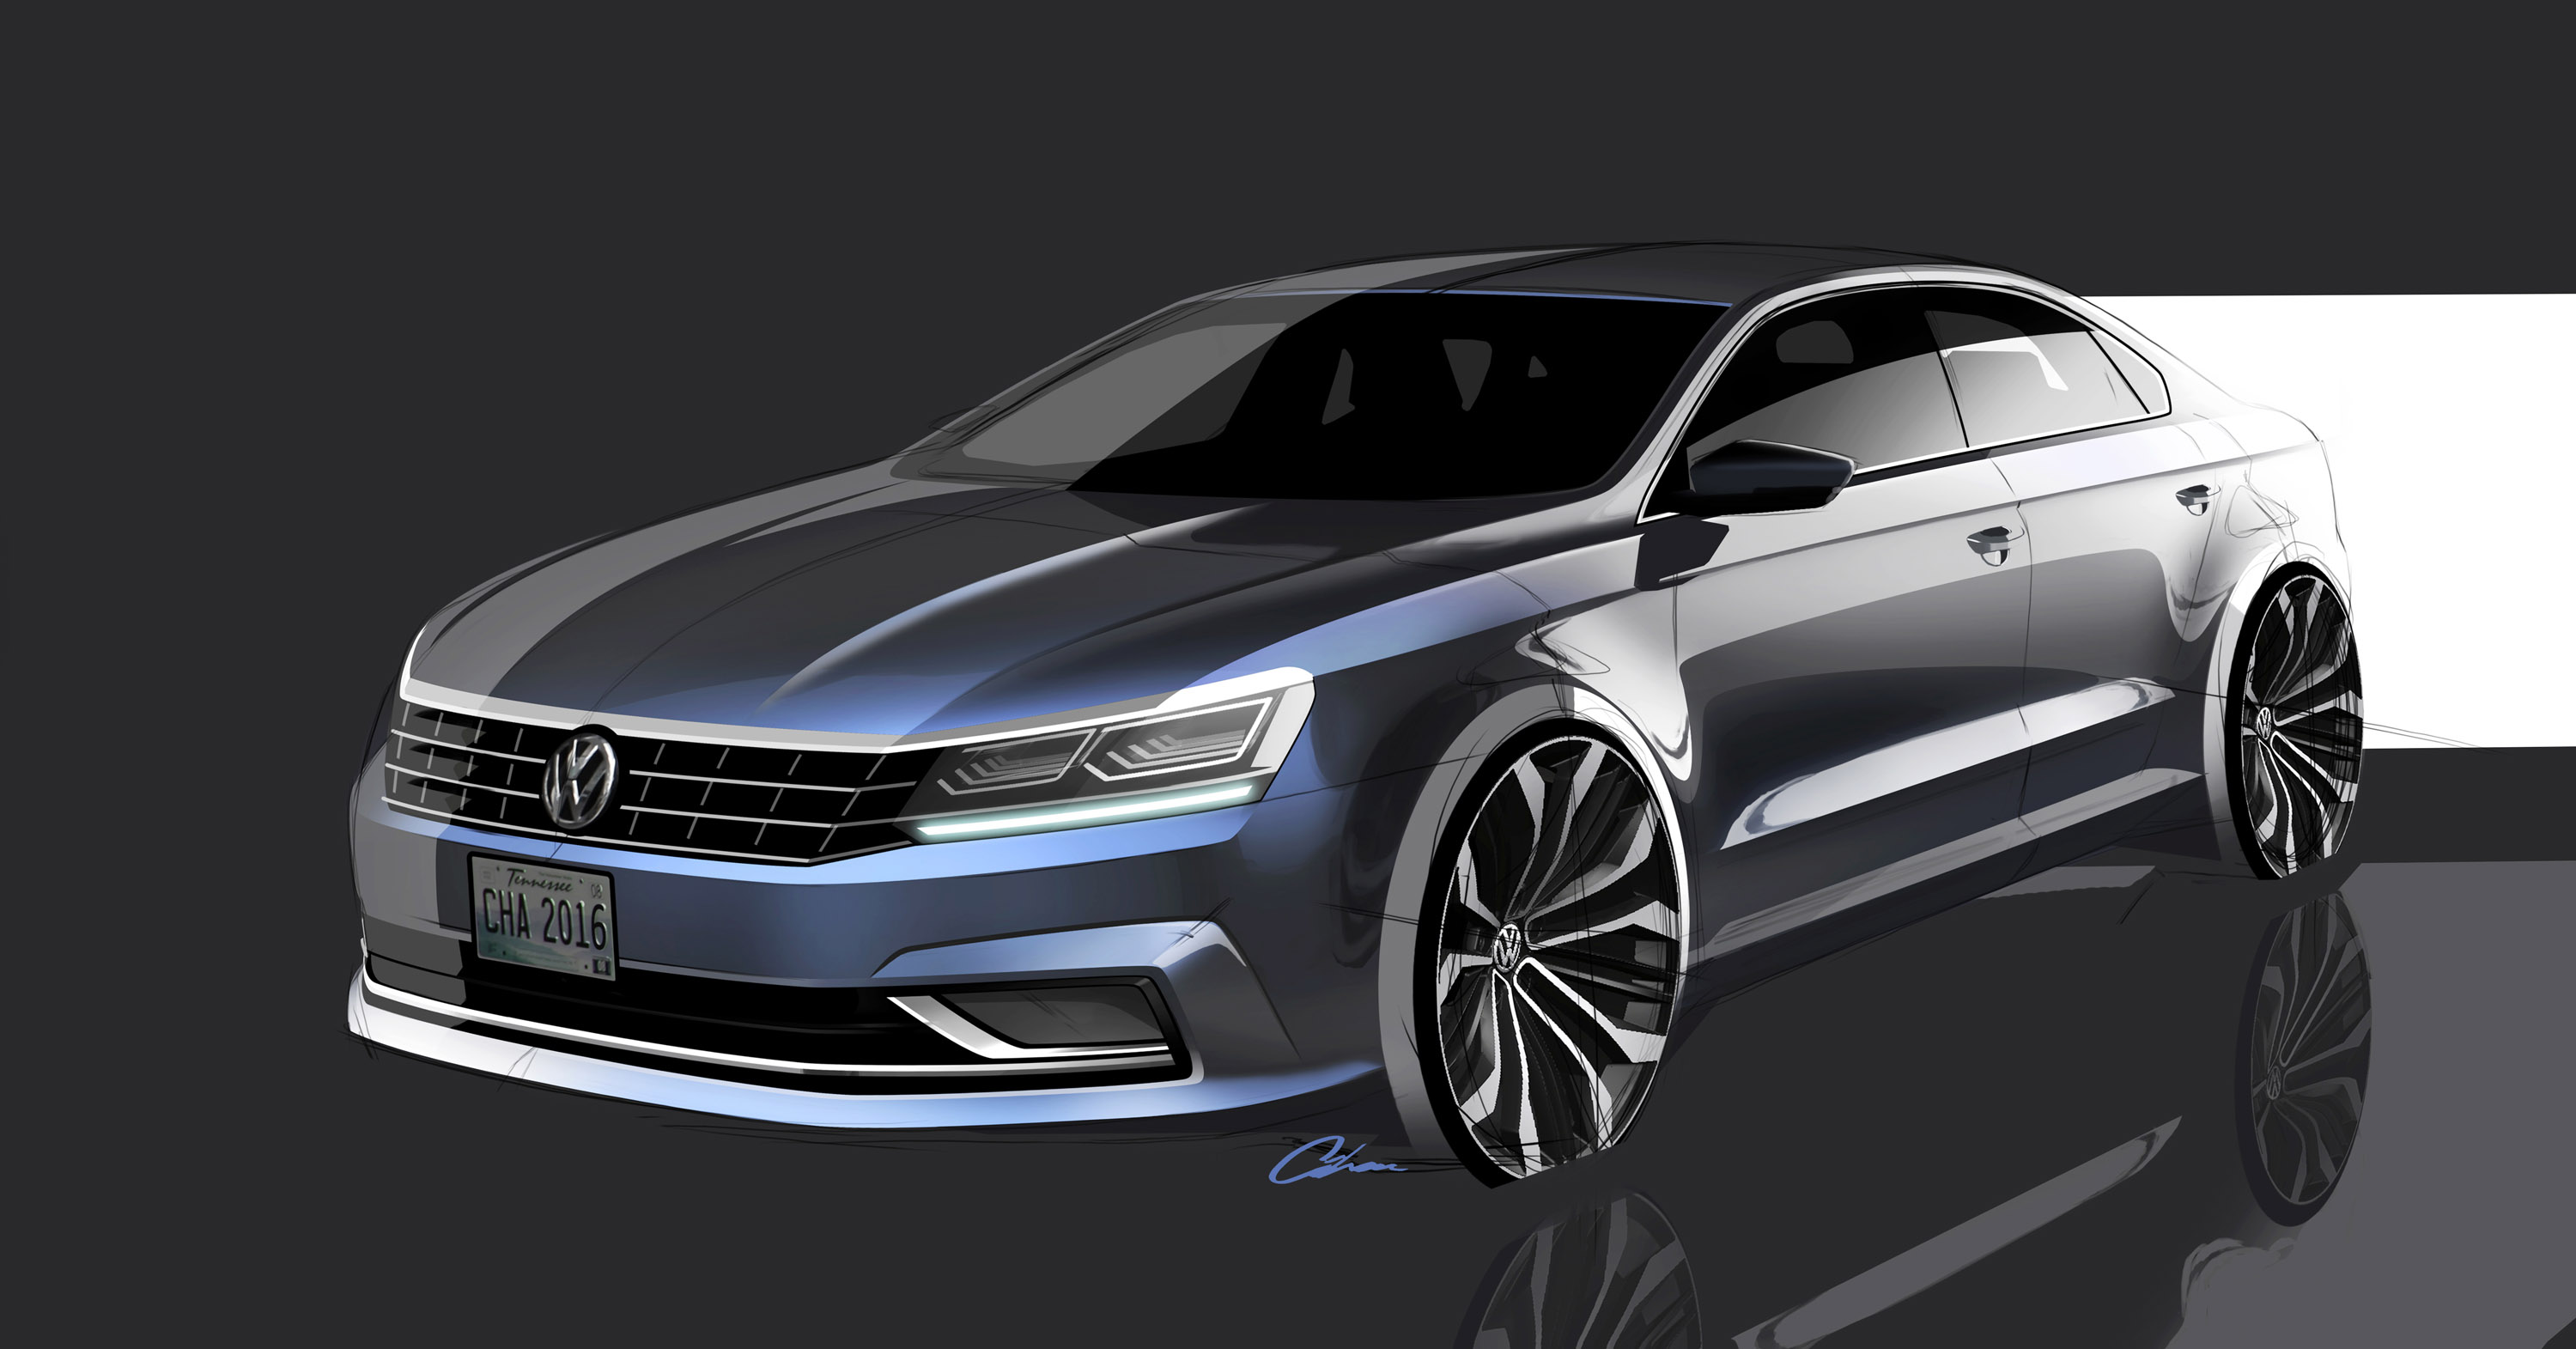 2016 Vw Passat Comes With Even More Upgrades And Gadgets